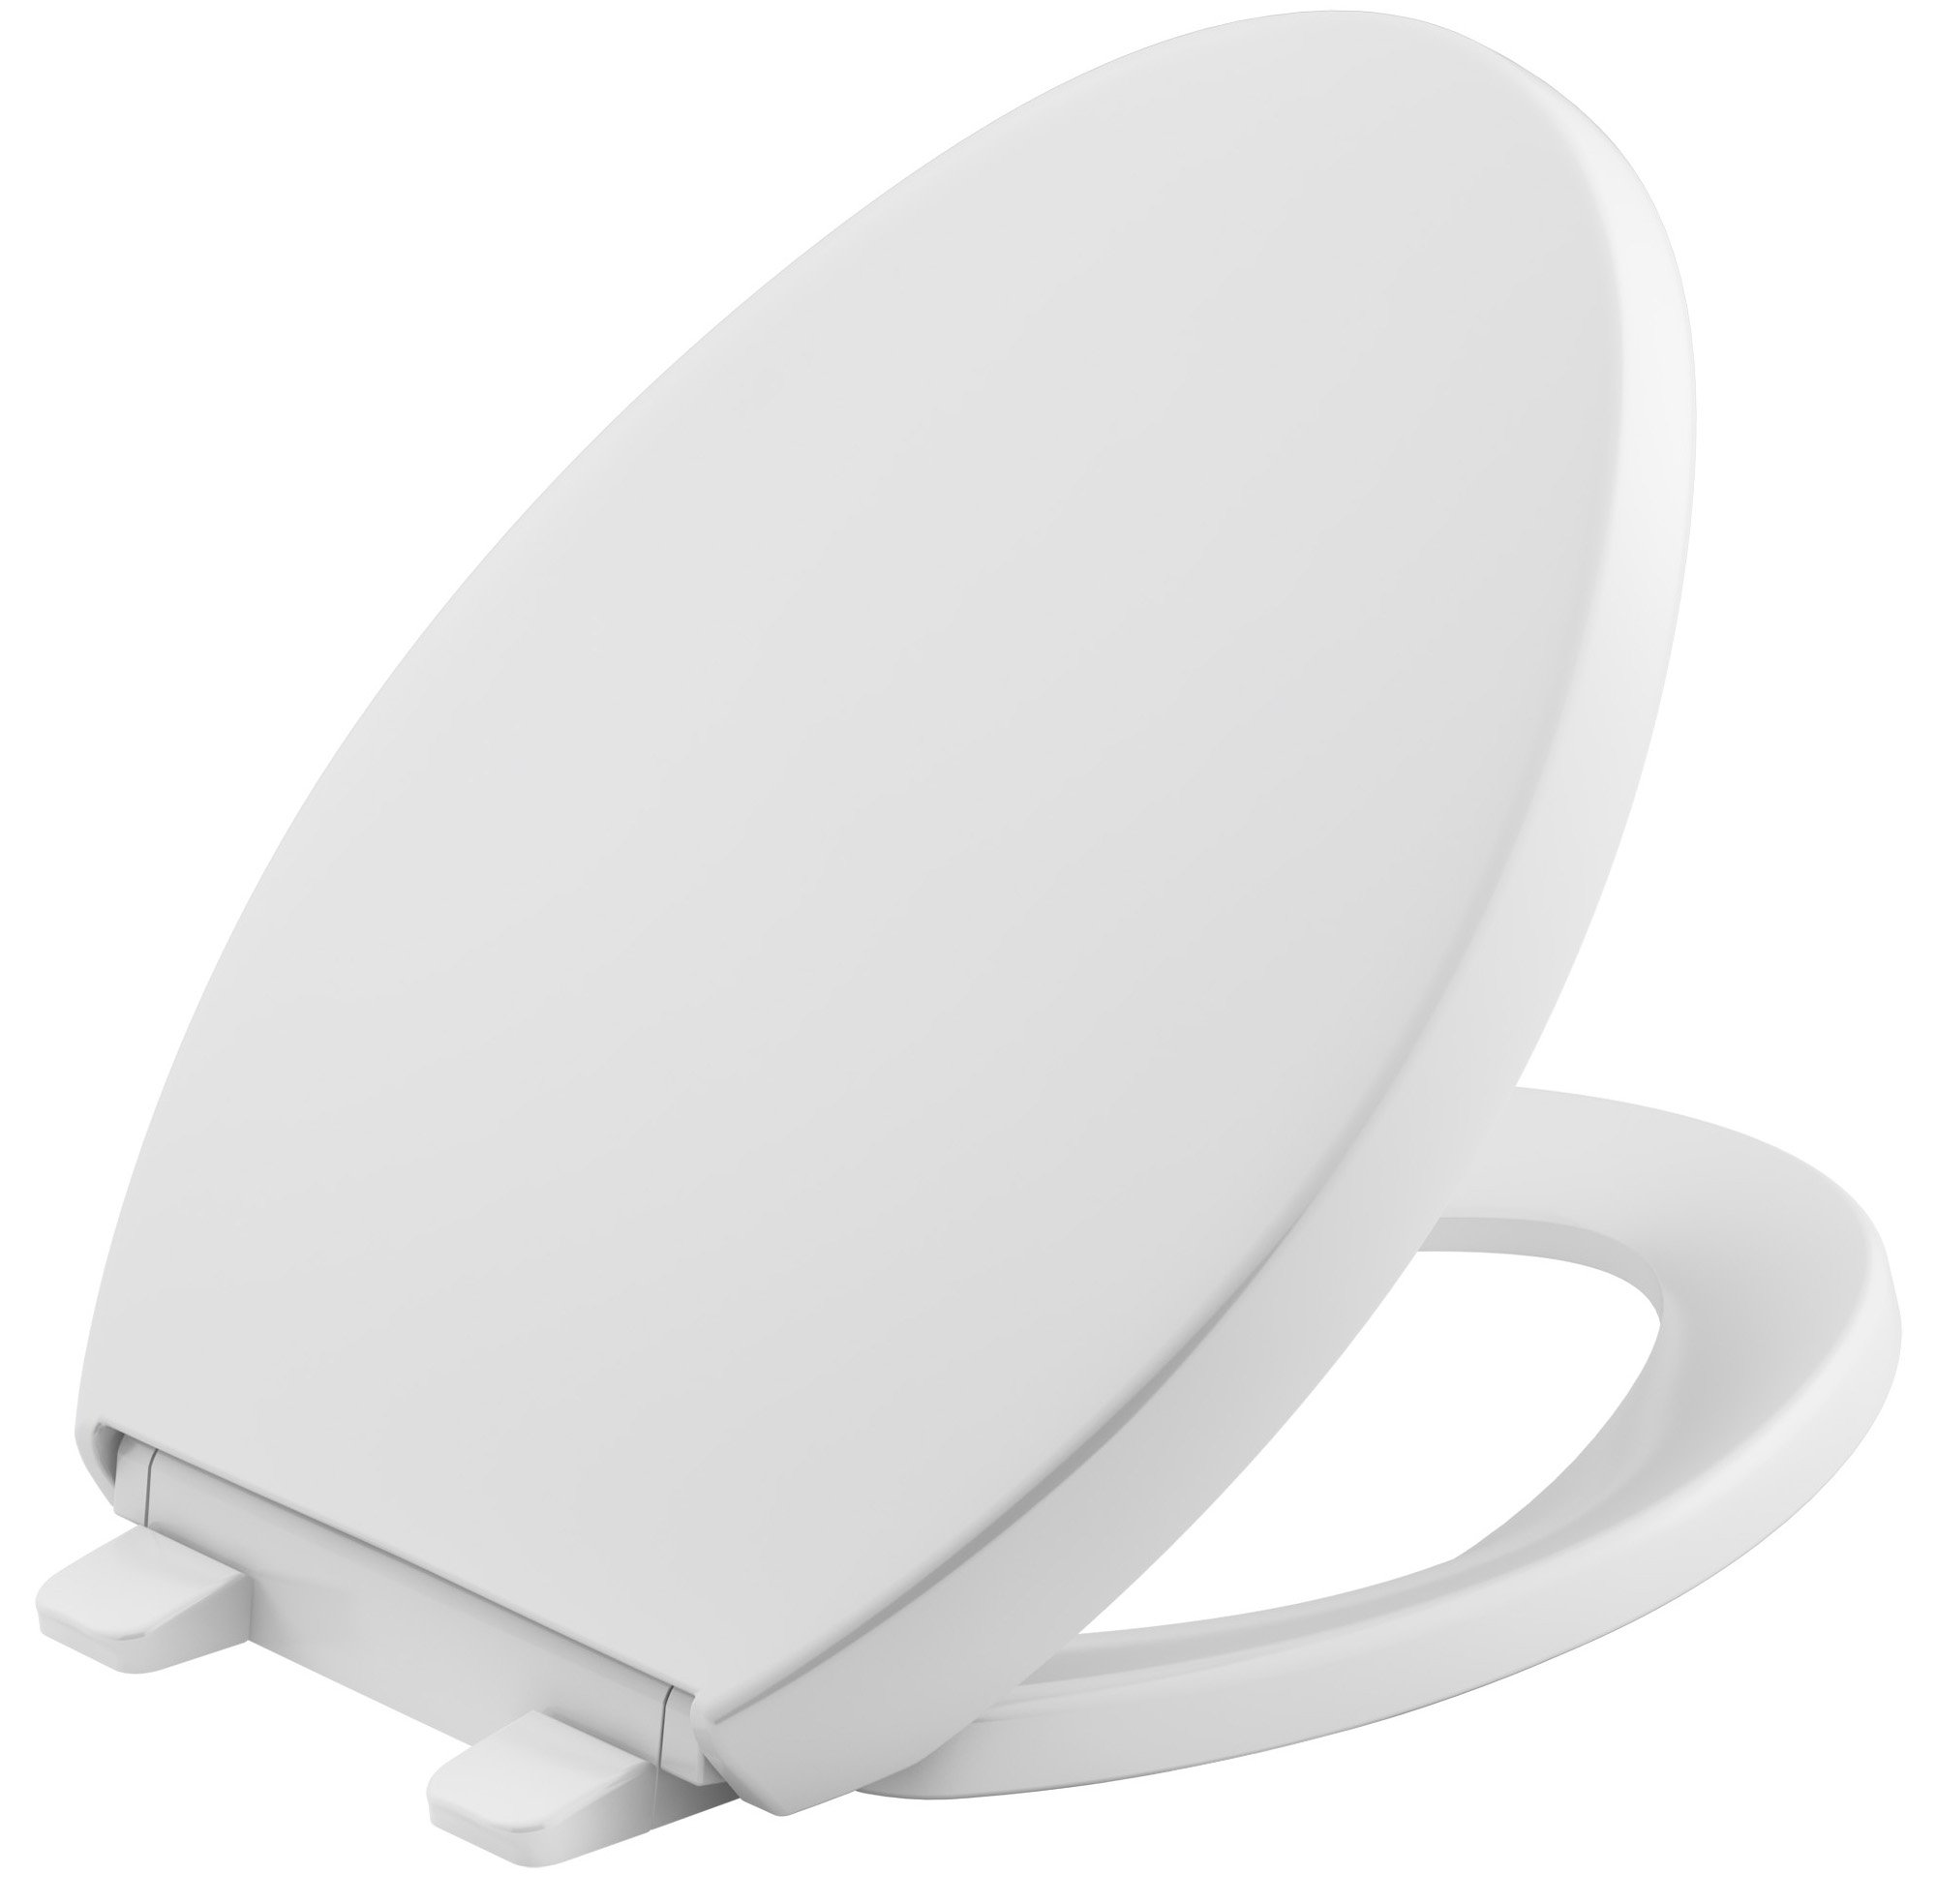 KOHLER K-4008-0 Reveal Quiet-Close with Grip-Tight Bumpers Elongated Toilet Seat, White